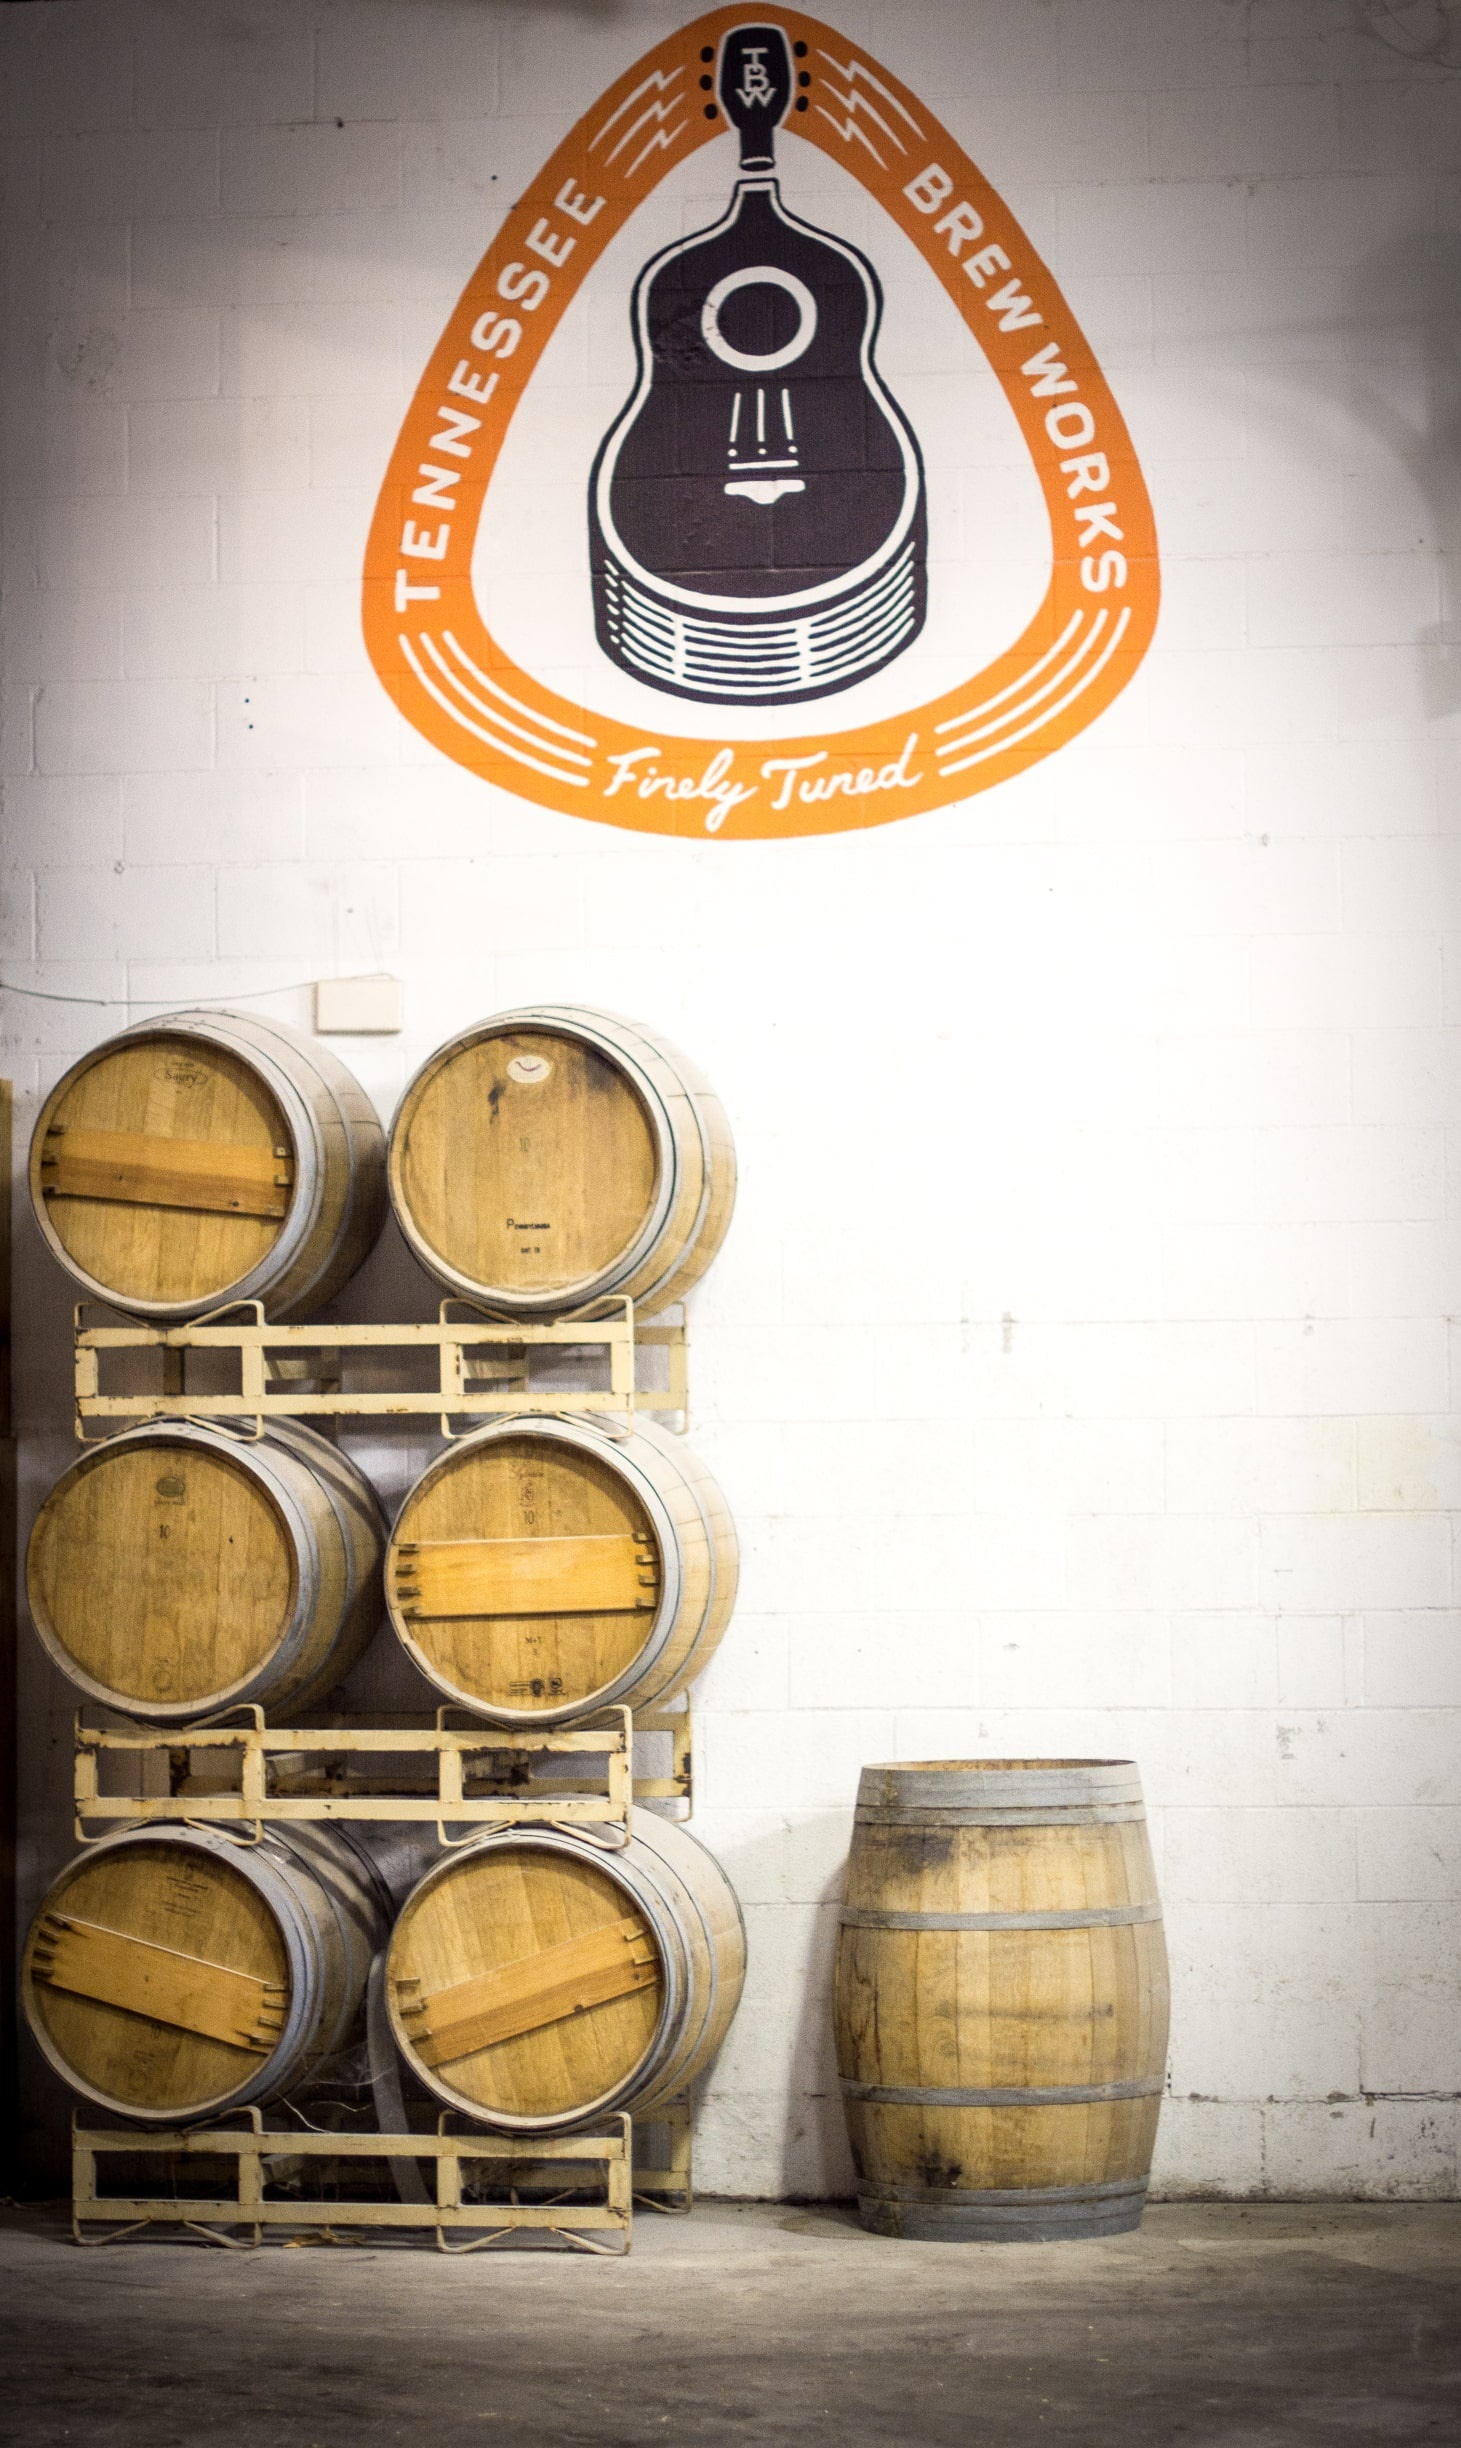 Tennessee Brew Works; Photo courtesy of PHASE:3 Marketing and Communications